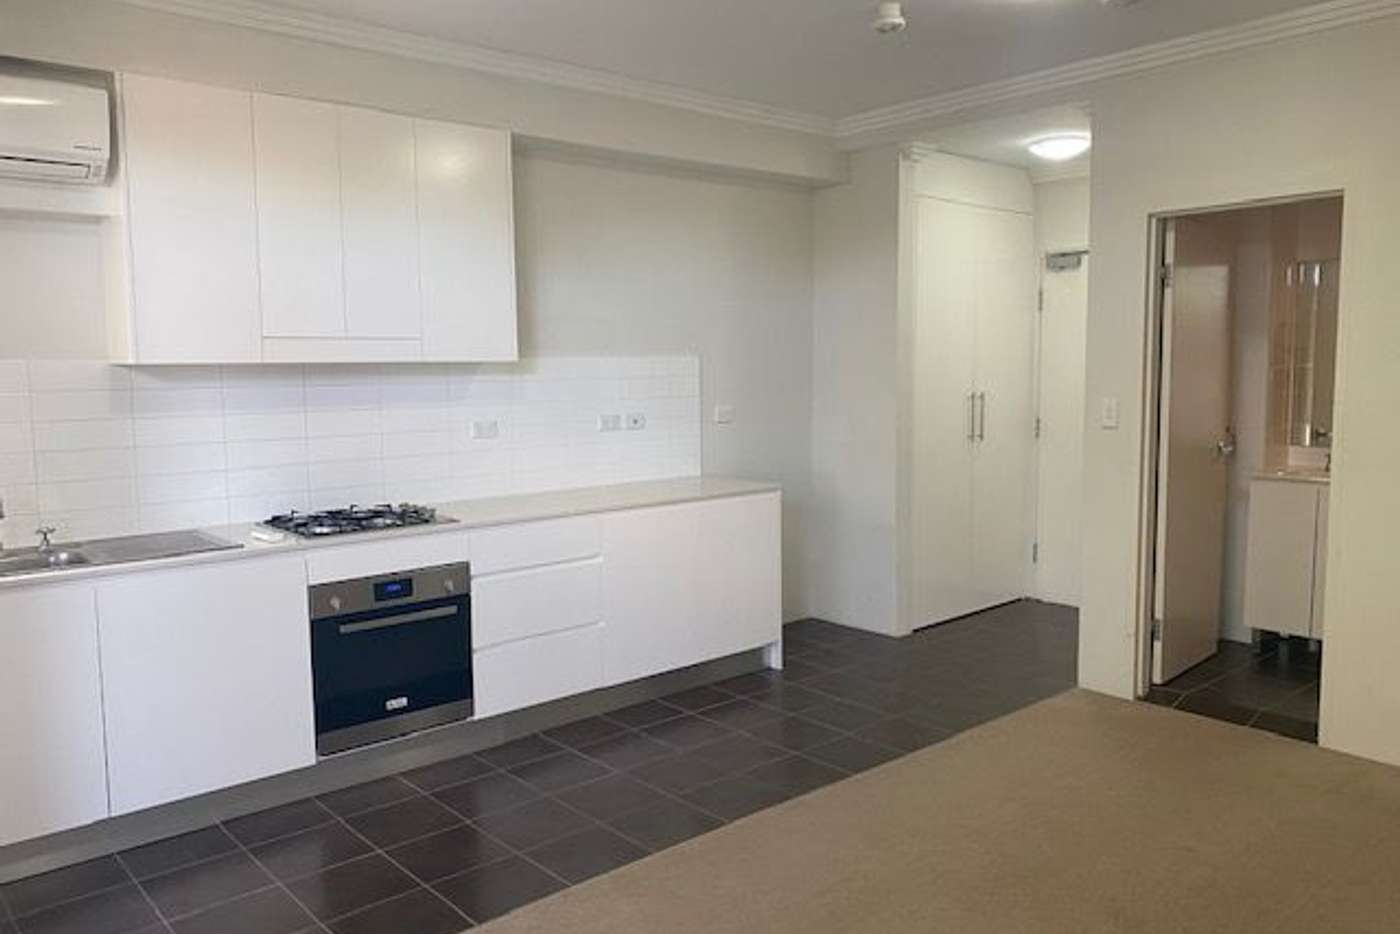 Main view of Homely studio listing, 4/3 Mona Street, Allawah NSW 2218